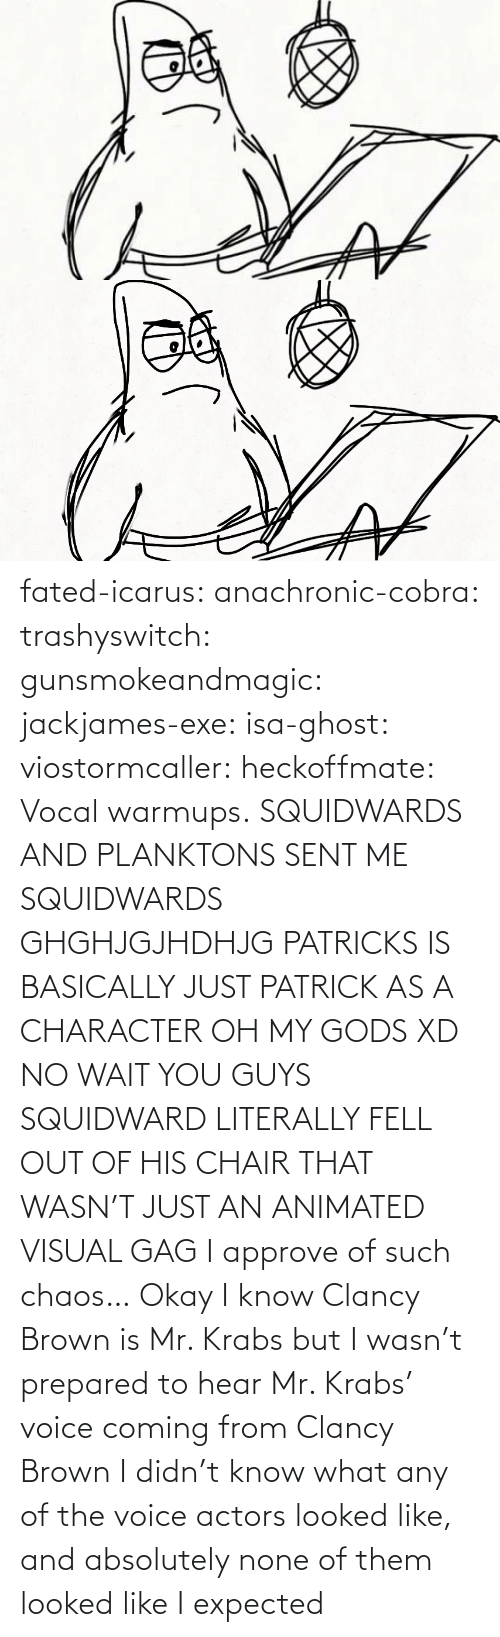 gyroscope: fated-icarus:  anachronic-cobra: trashyswitch:  gunsmokeandmagic:  jackjames-exe:  isa-ghost:   viostormcaller:  heckoffmate: Vocal warmups. SQUIDWARDS AND PLANKTONS SENT ME  SQUIDWARDS GHGHJGJHDHJG   PATRICKS IS BASICALLY JUST PATRICK AS A CHARACTER OH MY GODS XD   NO WAIT YOU GUYS SQUIDWARD LITERALLY FELL OUT OF HIS CHAIR THAT WASN'T JUST AN ANIMATED VISUAL GAG    I approve of such chaos…    Okay I know Clancy Brown is Mr. Krabs but I wasn't prepared to hear Mr. Krabs' voice coming from Clancy Brown    I didn't know what any of the voice actors looked like, and absolutely none of them looked like I expected